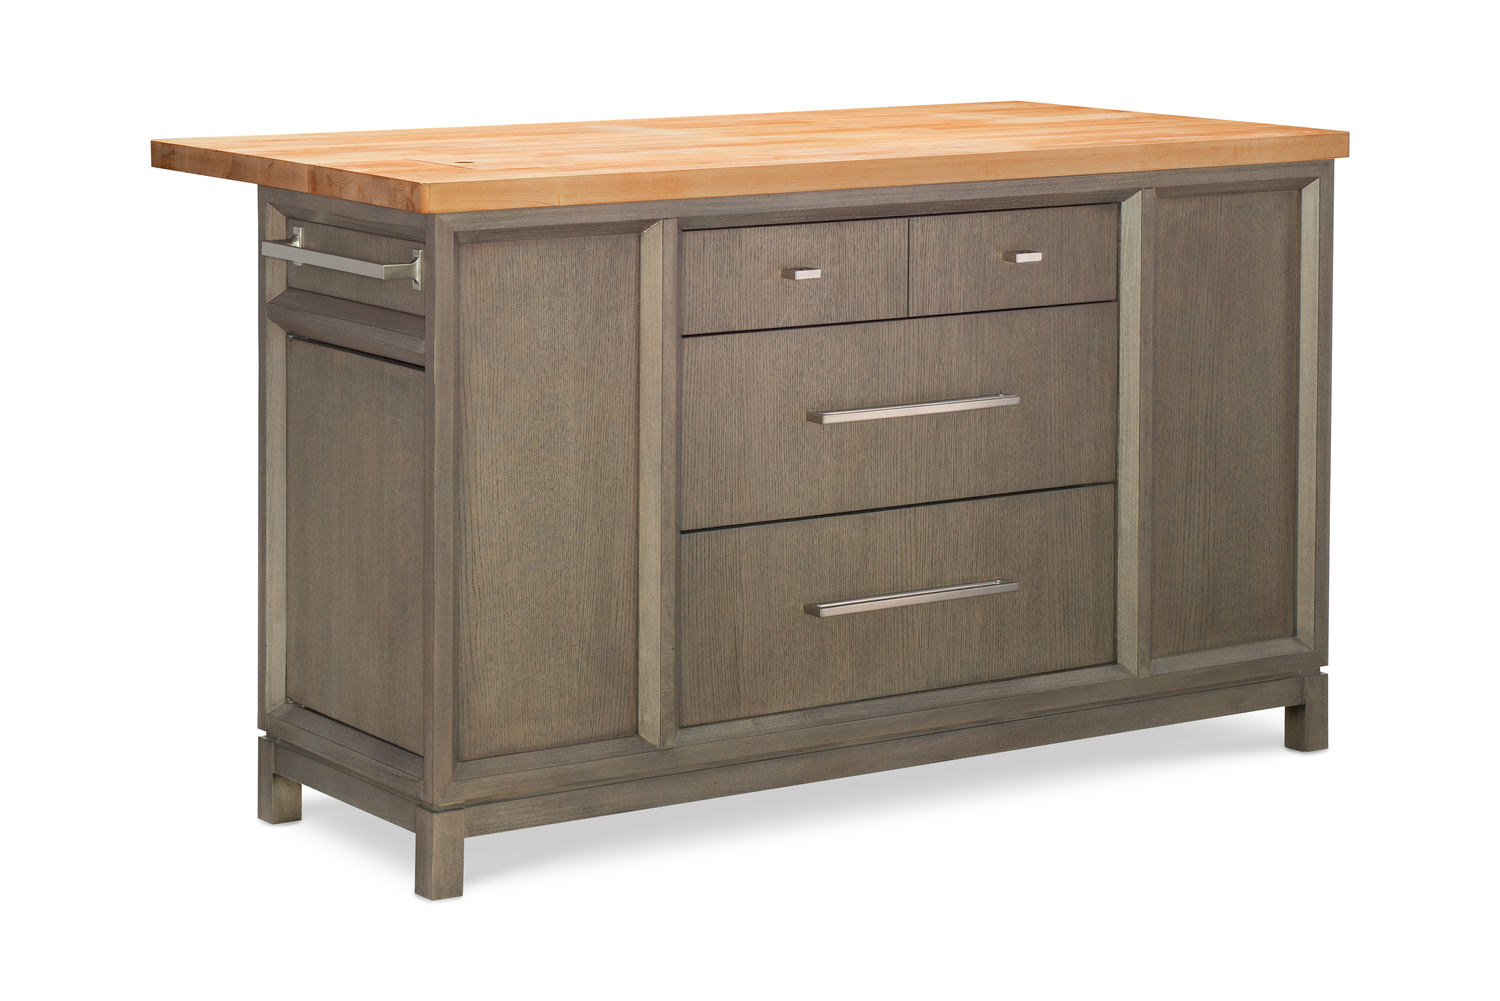 Rachael Ray Highline Kitchen Island